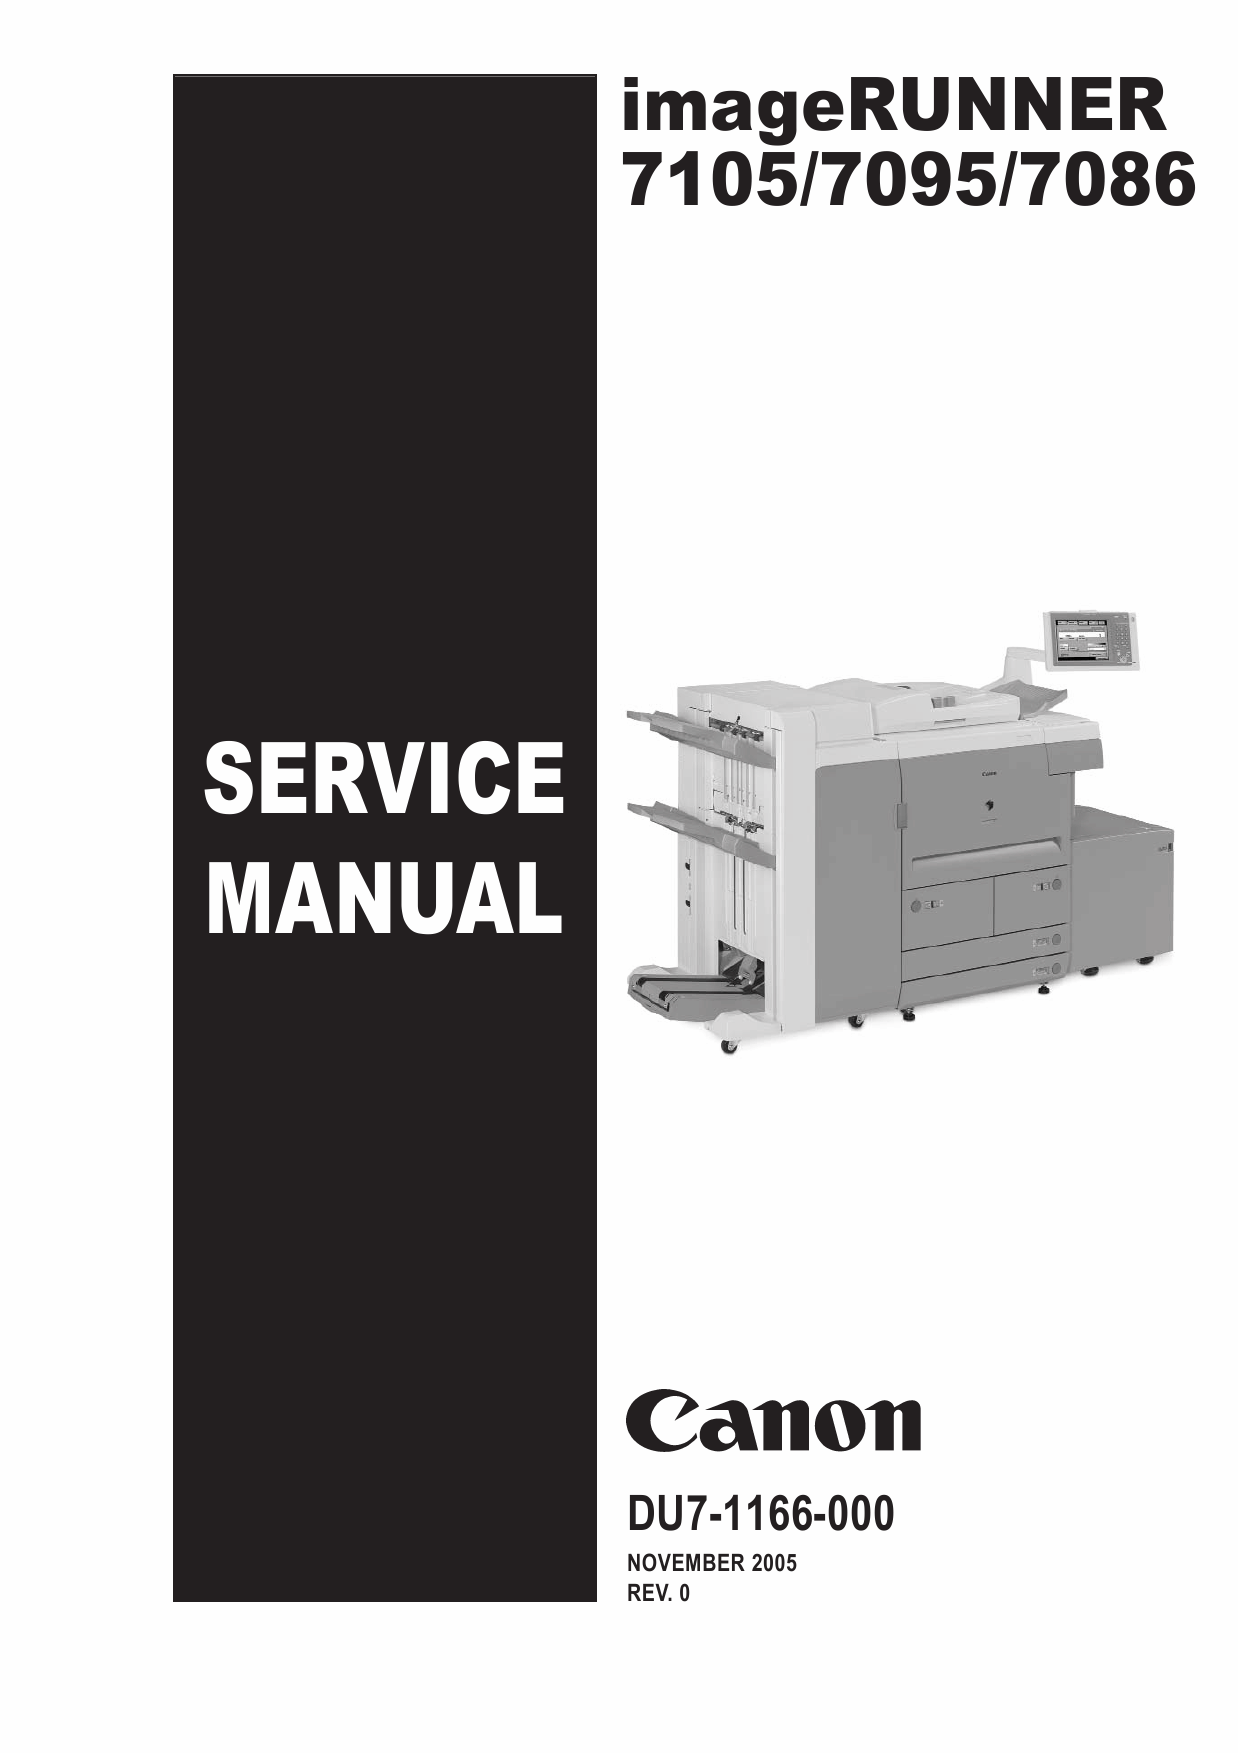 Canon imageRUNNER iR-7105 7095 7086 Parts and Service Manual-1